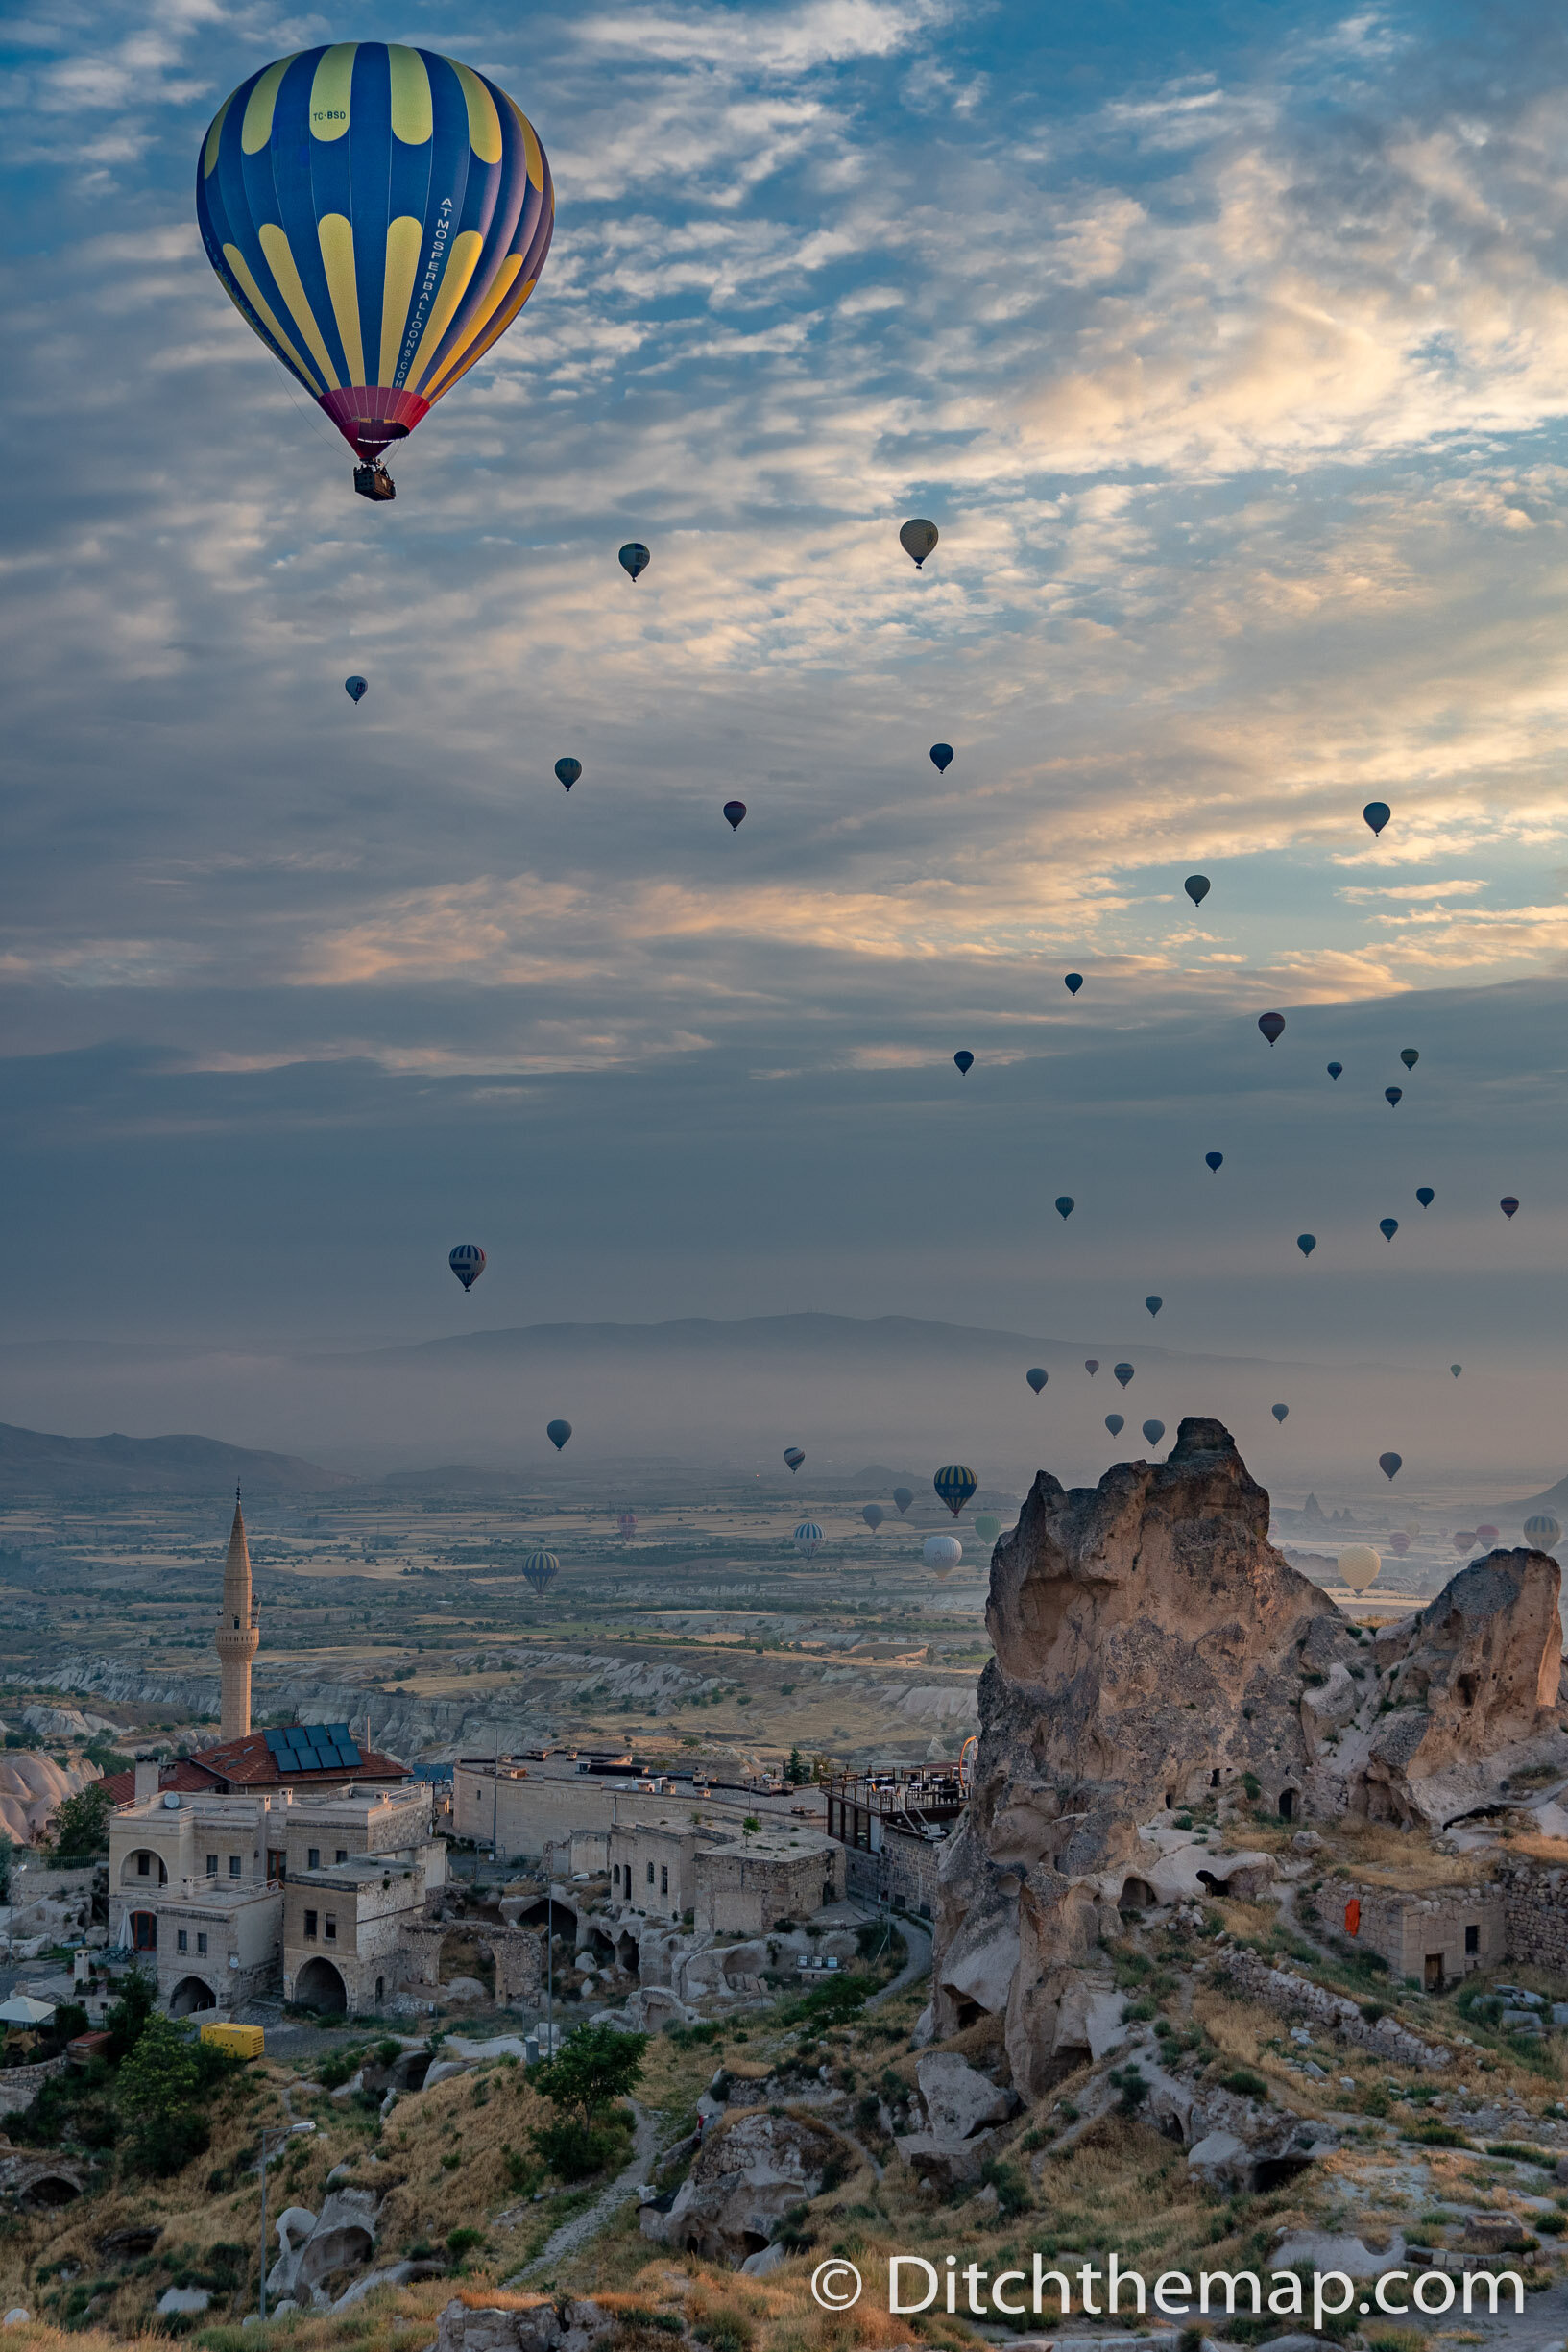 Watching Balloons at sunrise in Cappadocia, Turkey